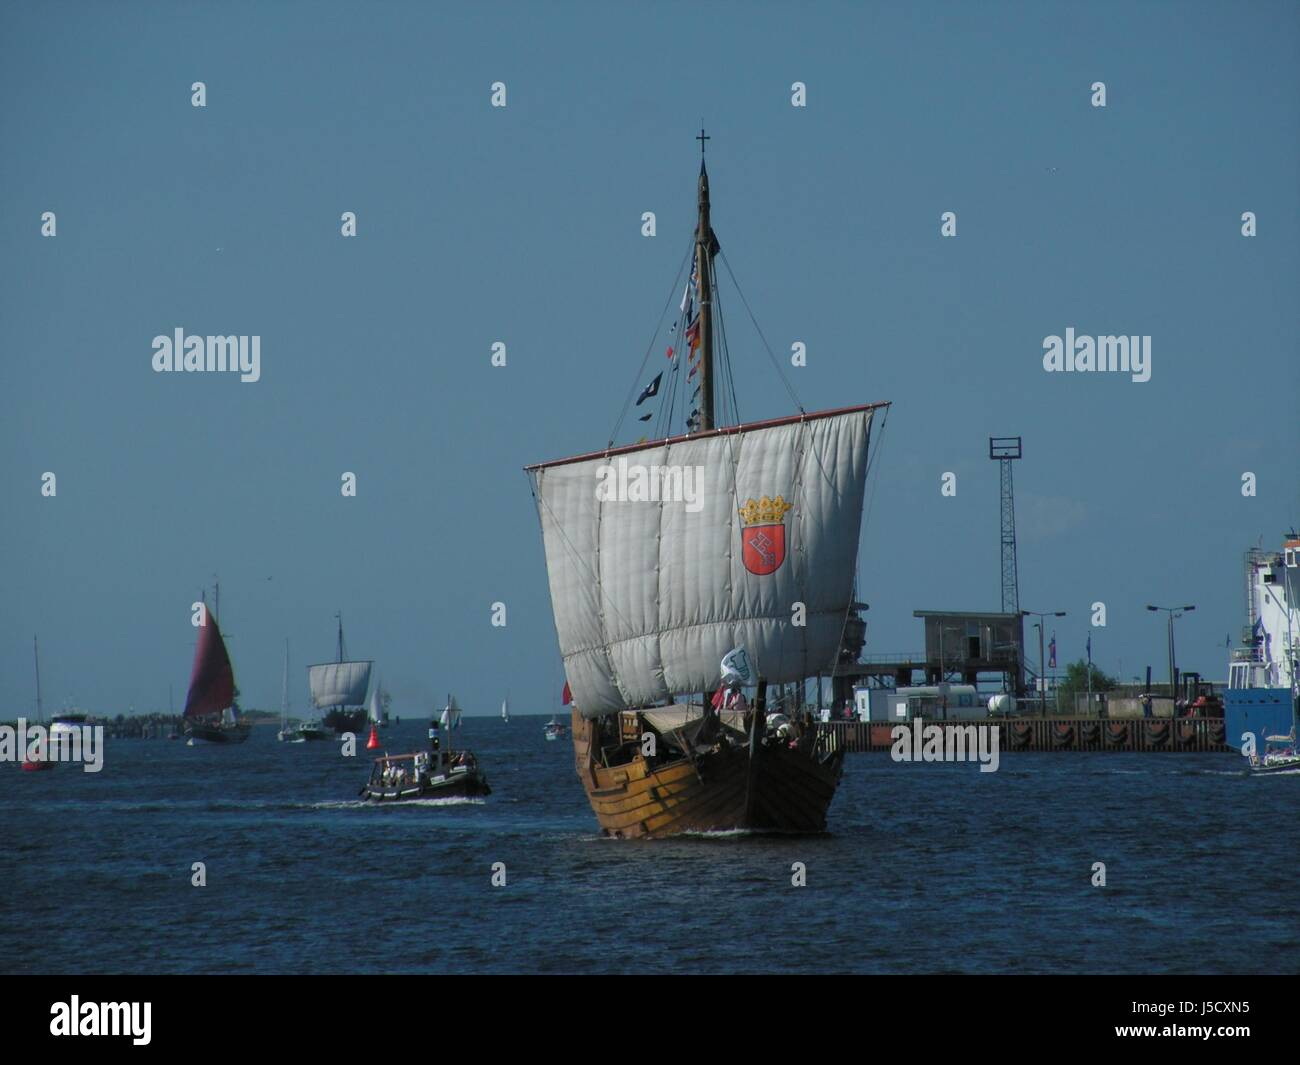 harbor sail water baltic sea salt water sea ocean Hanseatic city dew harbours - Stock Image